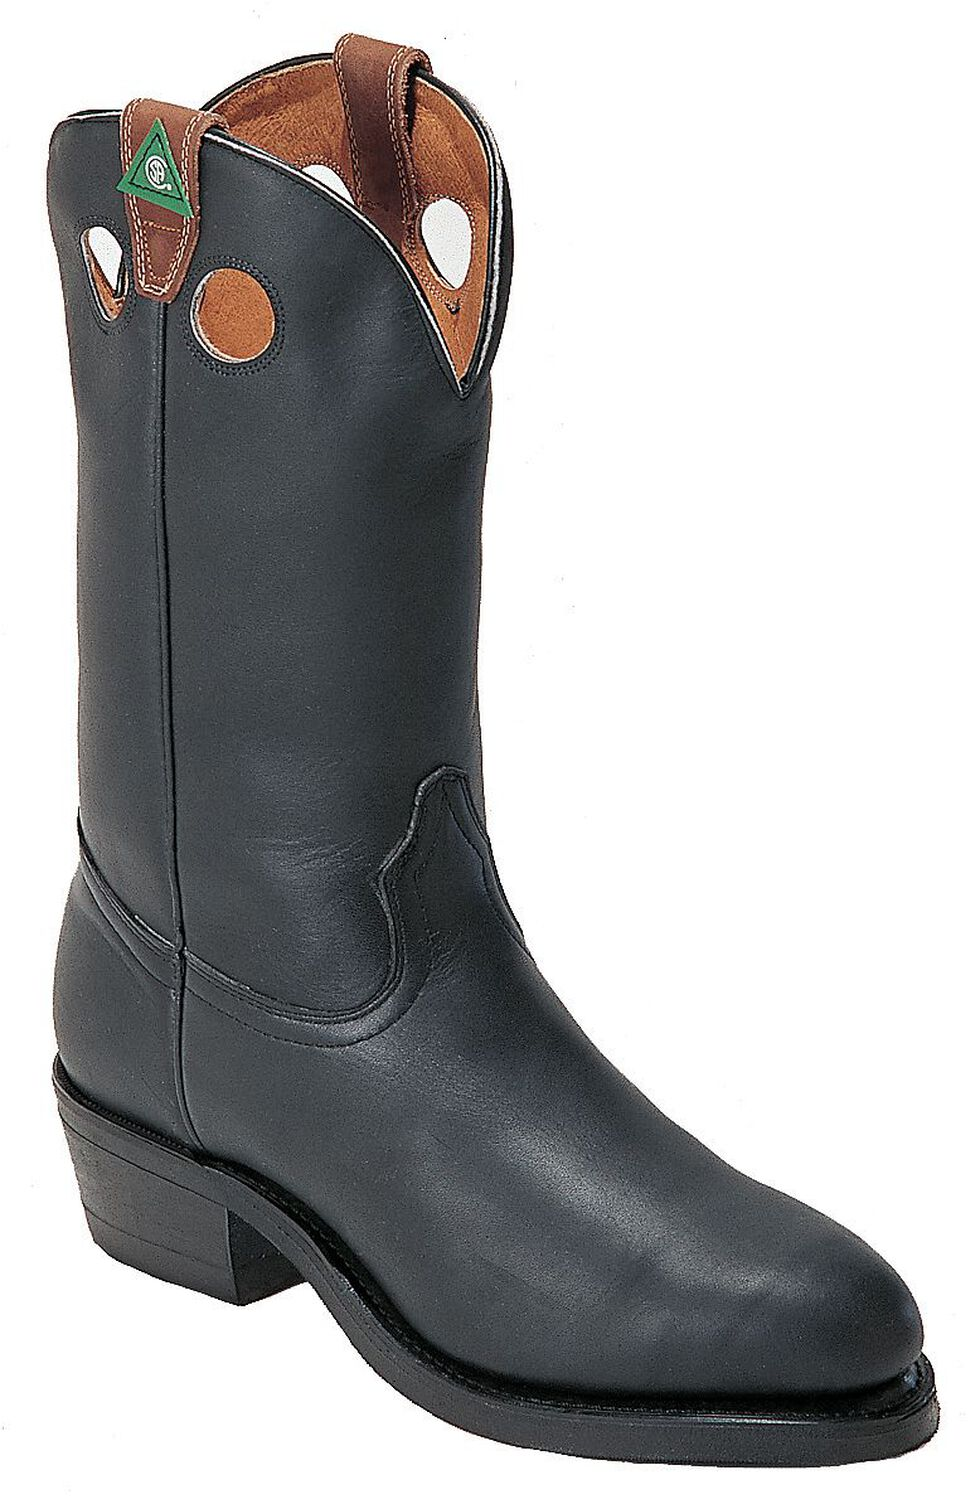 Boulet Pull-On Work Boots - Steel Toe, , hi-res